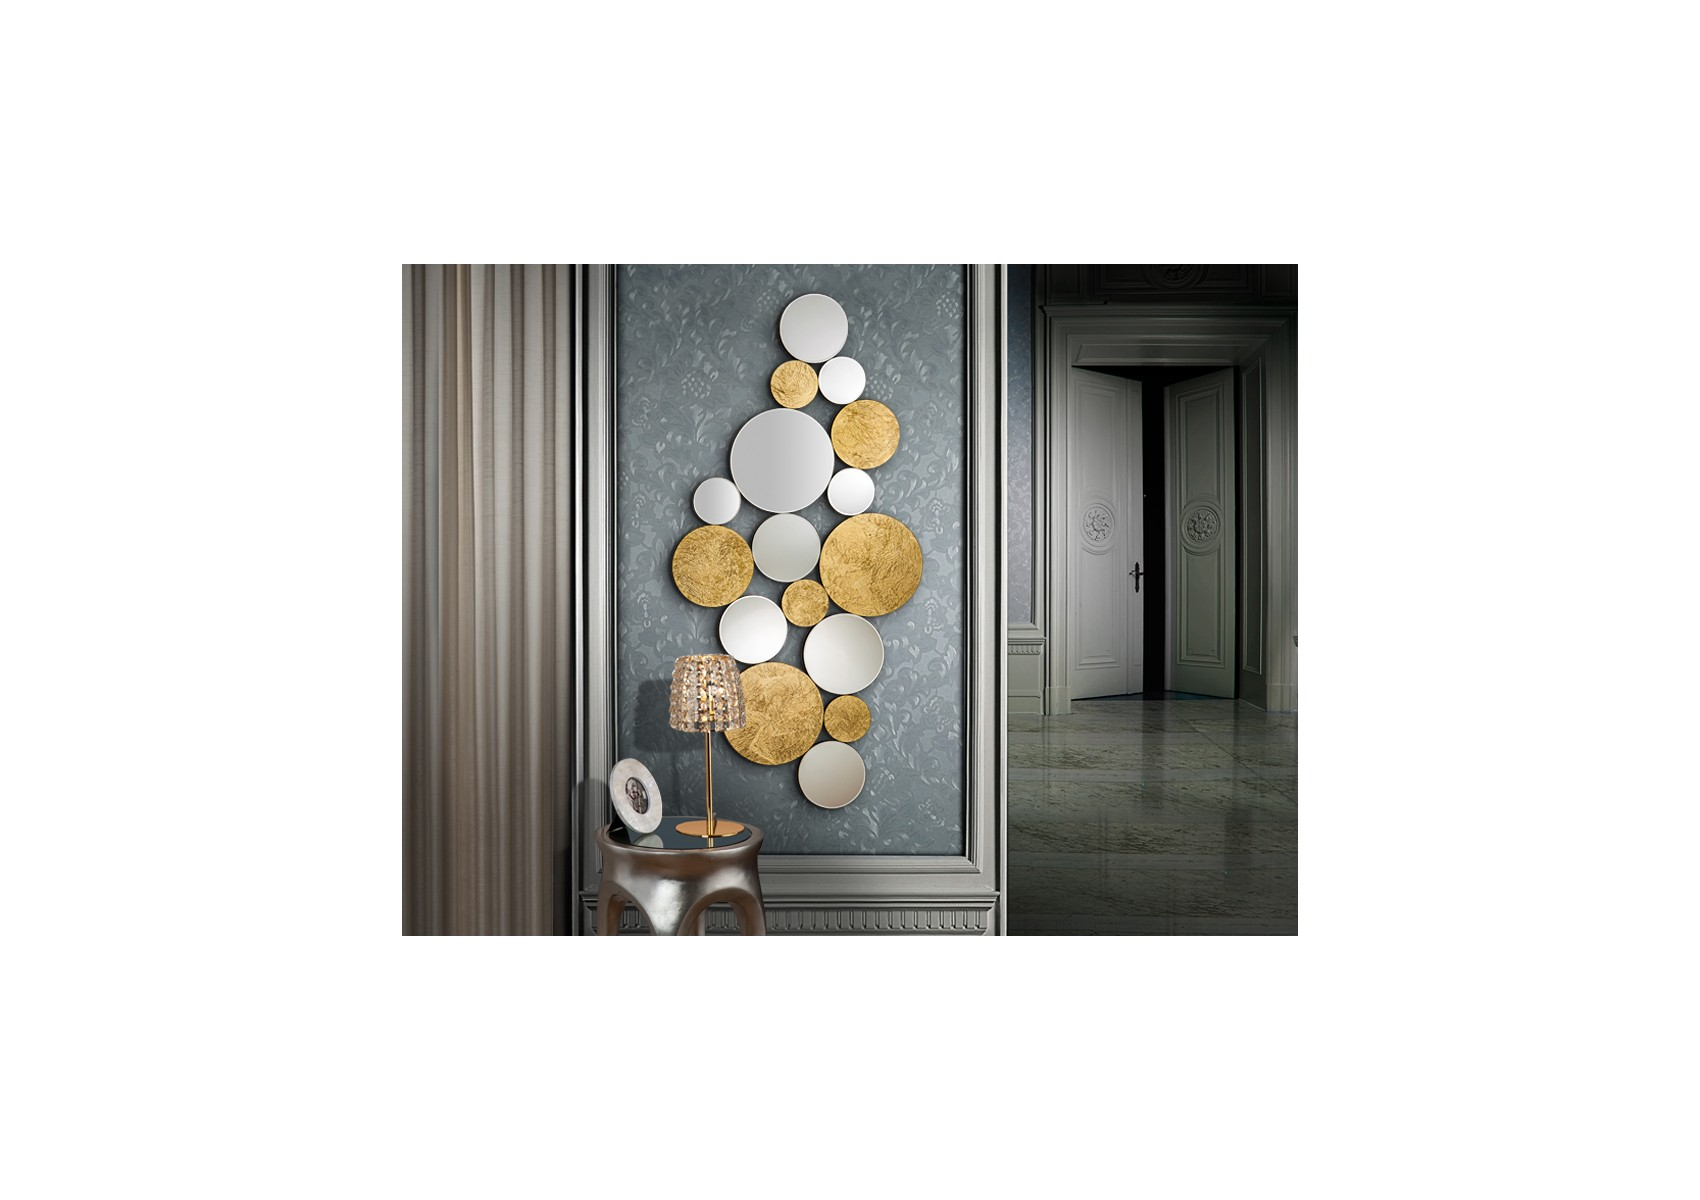 Miroir Design Pour Salon Cheap Glace Murale Pour Salon With Glace Murale Pour Salon